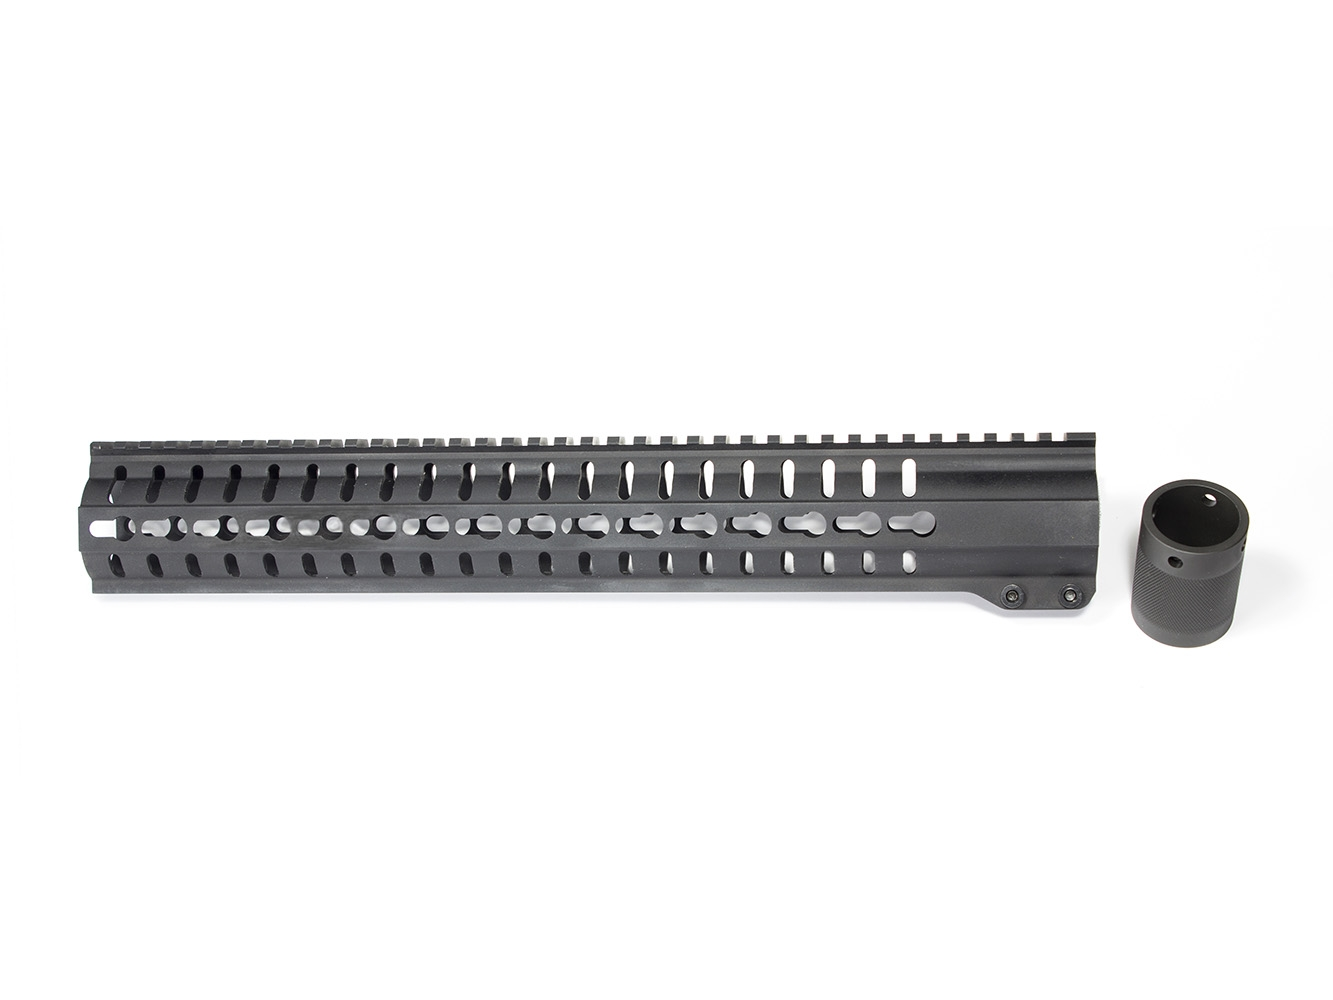 CMMG CMMG Hand Guard Kit, Mk3, RKM15